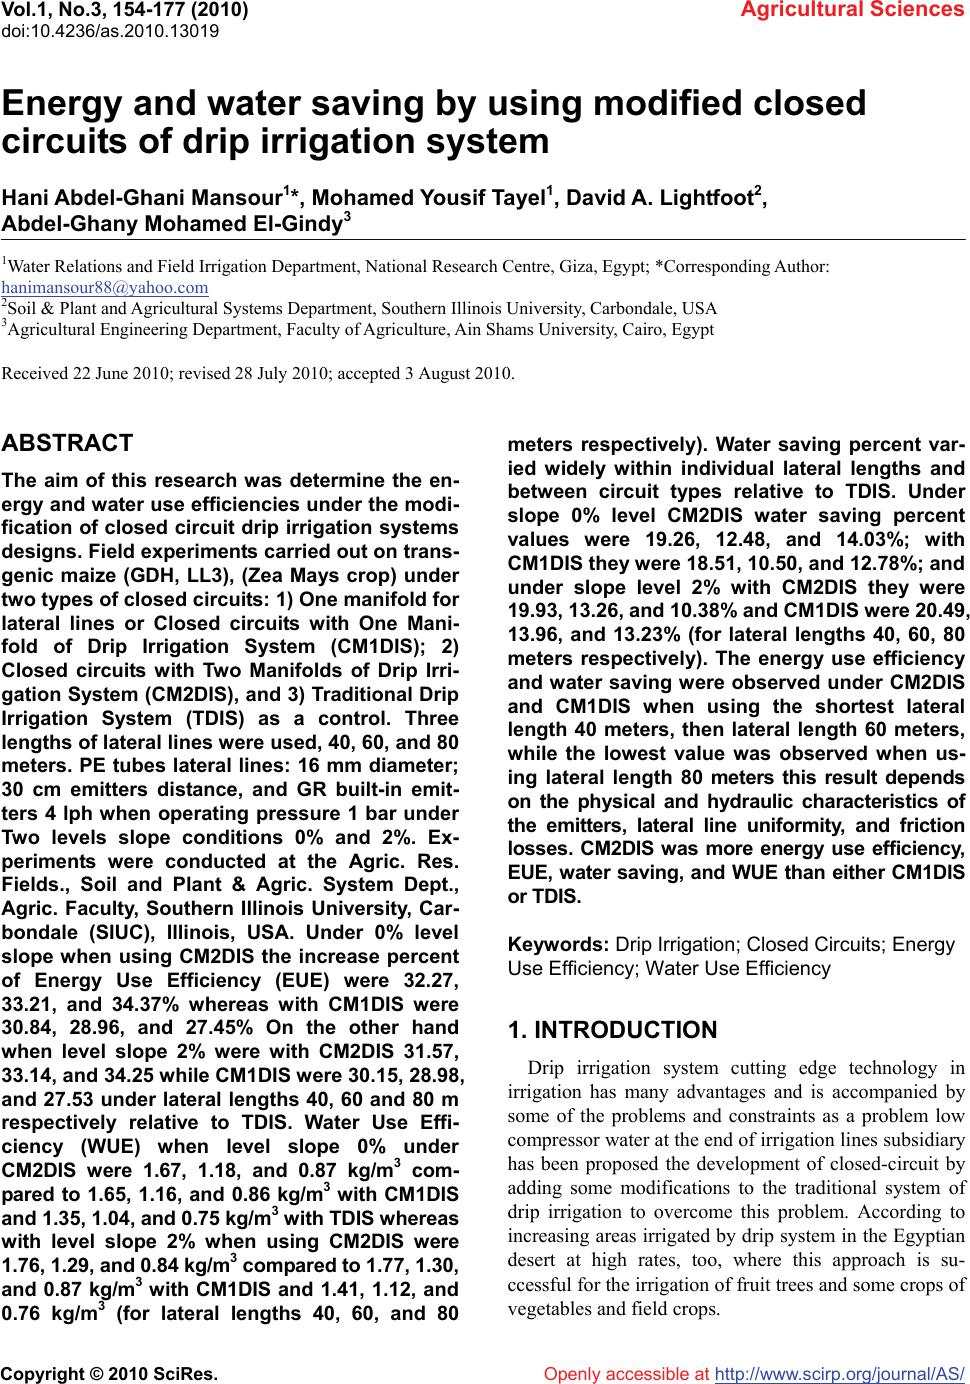 Energy And Water Saving By Using Modified Closed Circuits Of Drip Circuit Wizard Standard Edition Simulation Menu Window Vol1 No3 154 177 2010 Agricultural Sciences